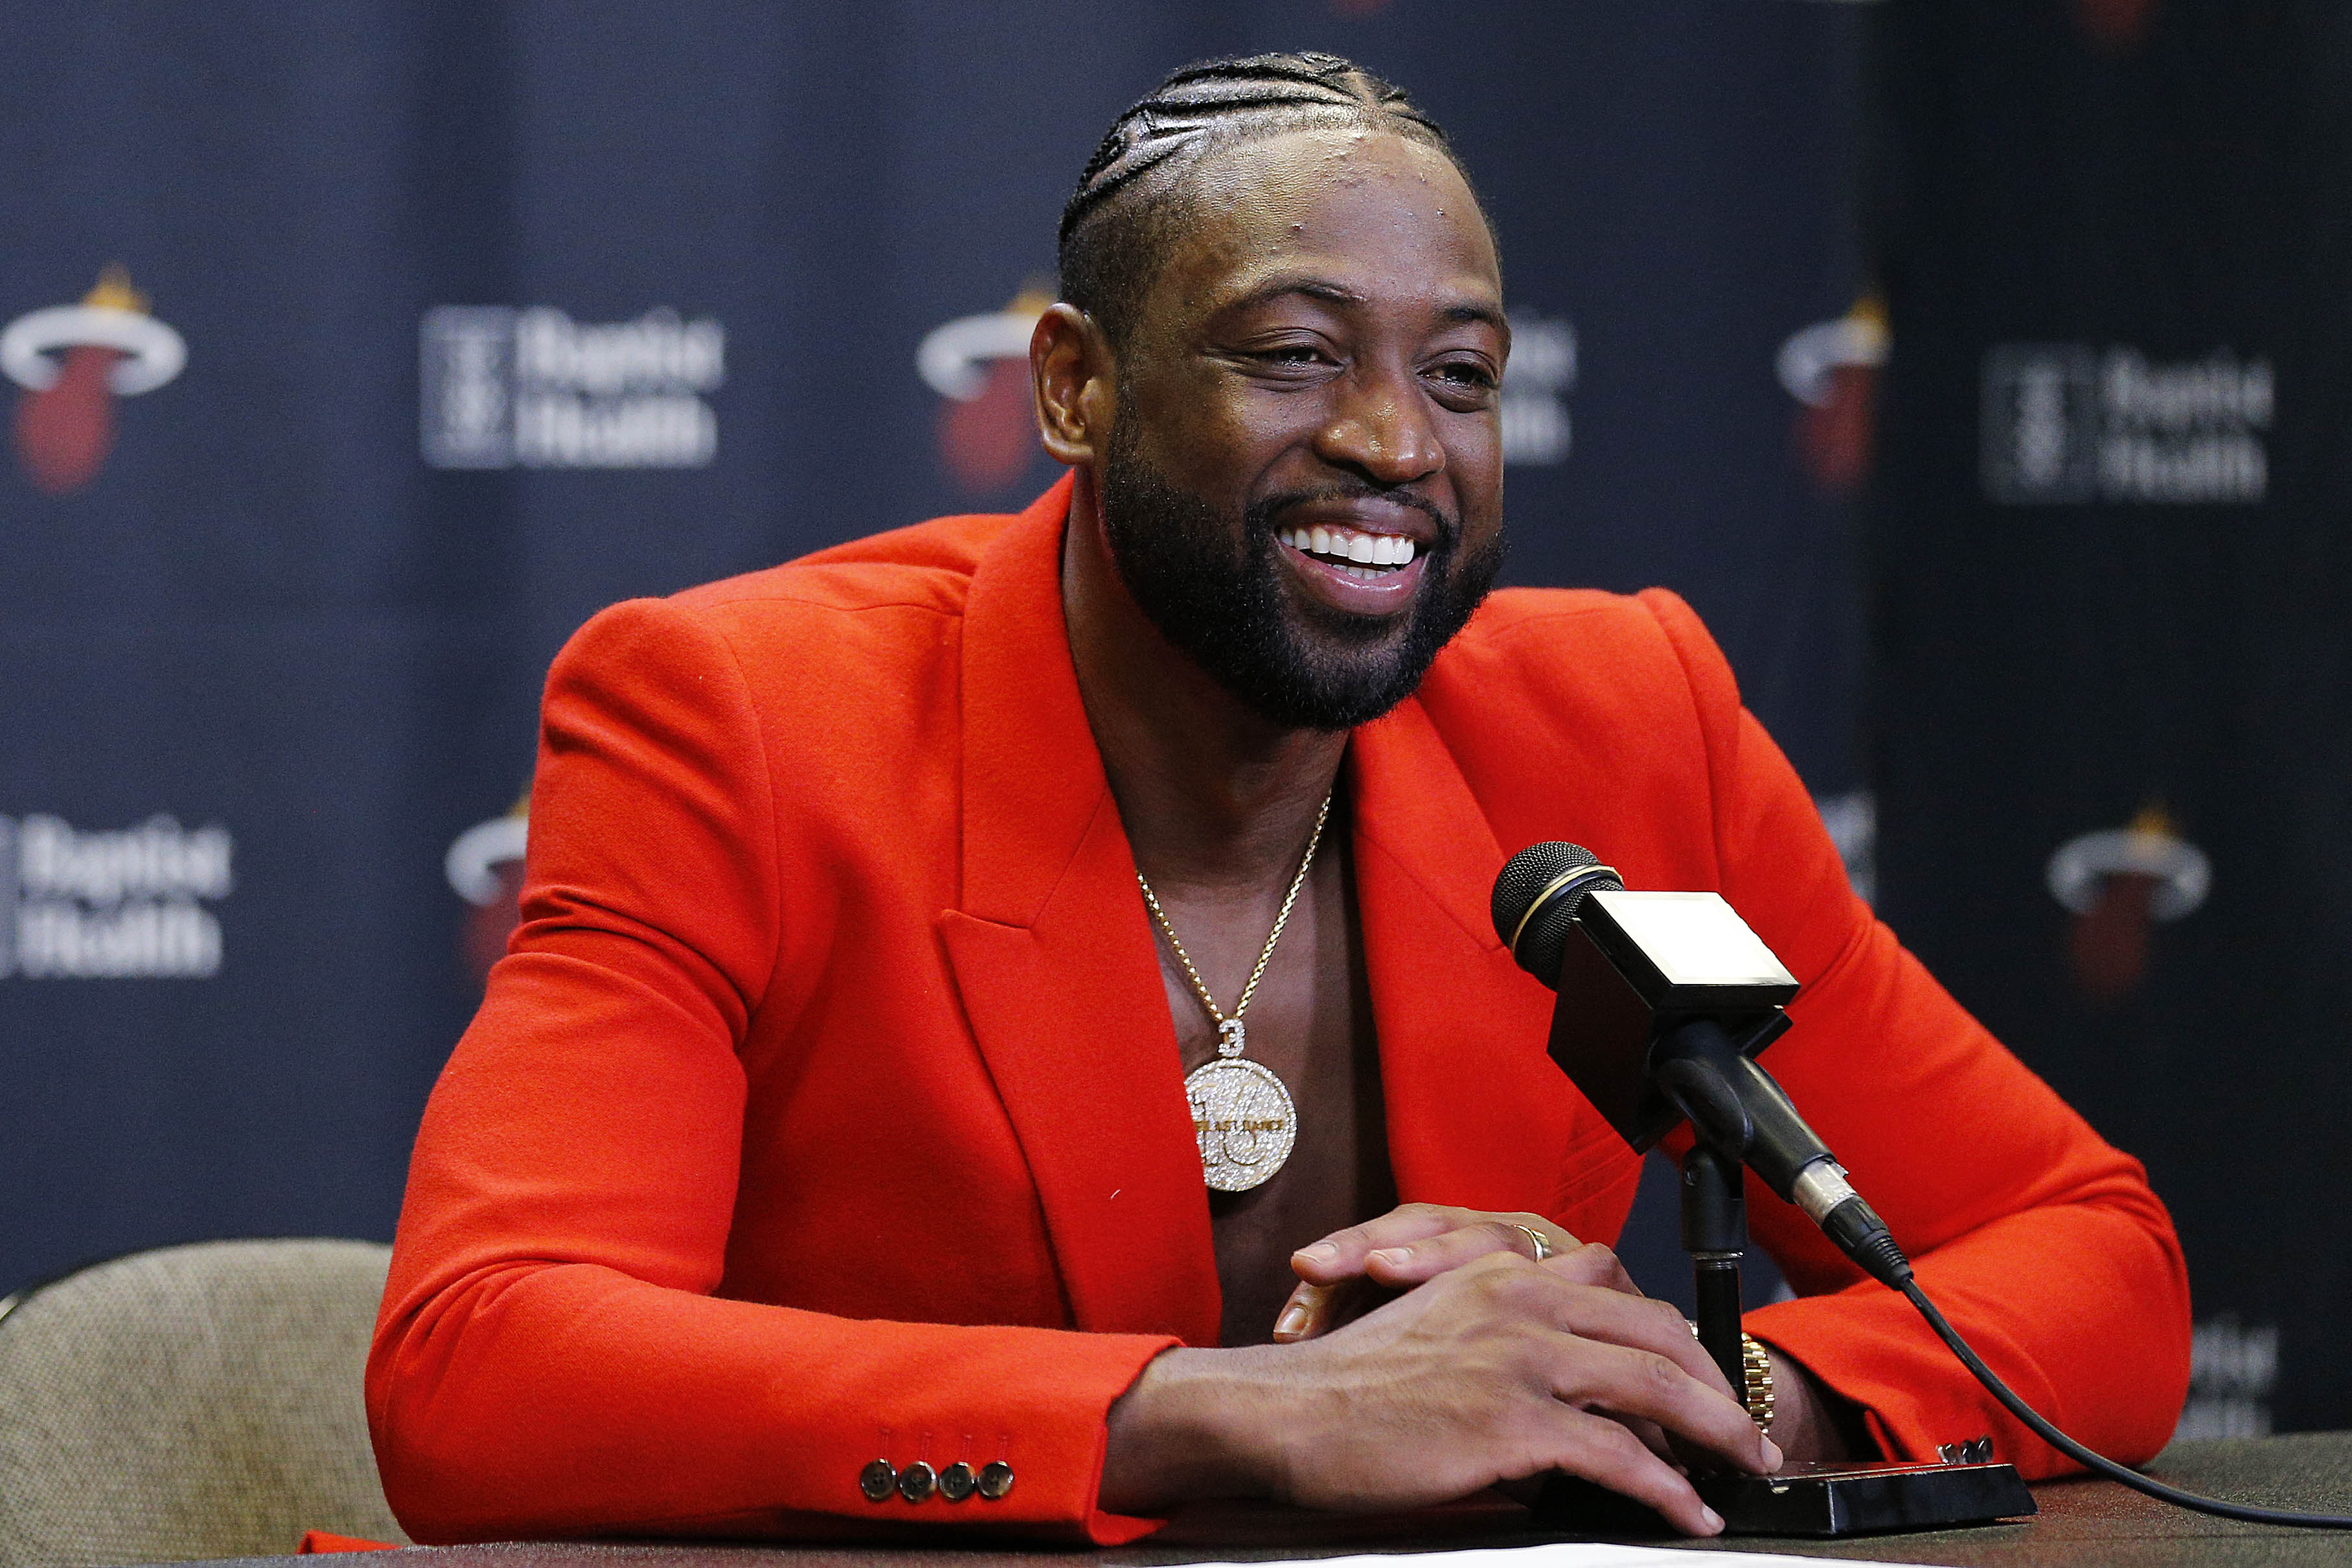 ESPN The Body Issue: Dwyane Wade admits posing naked was not